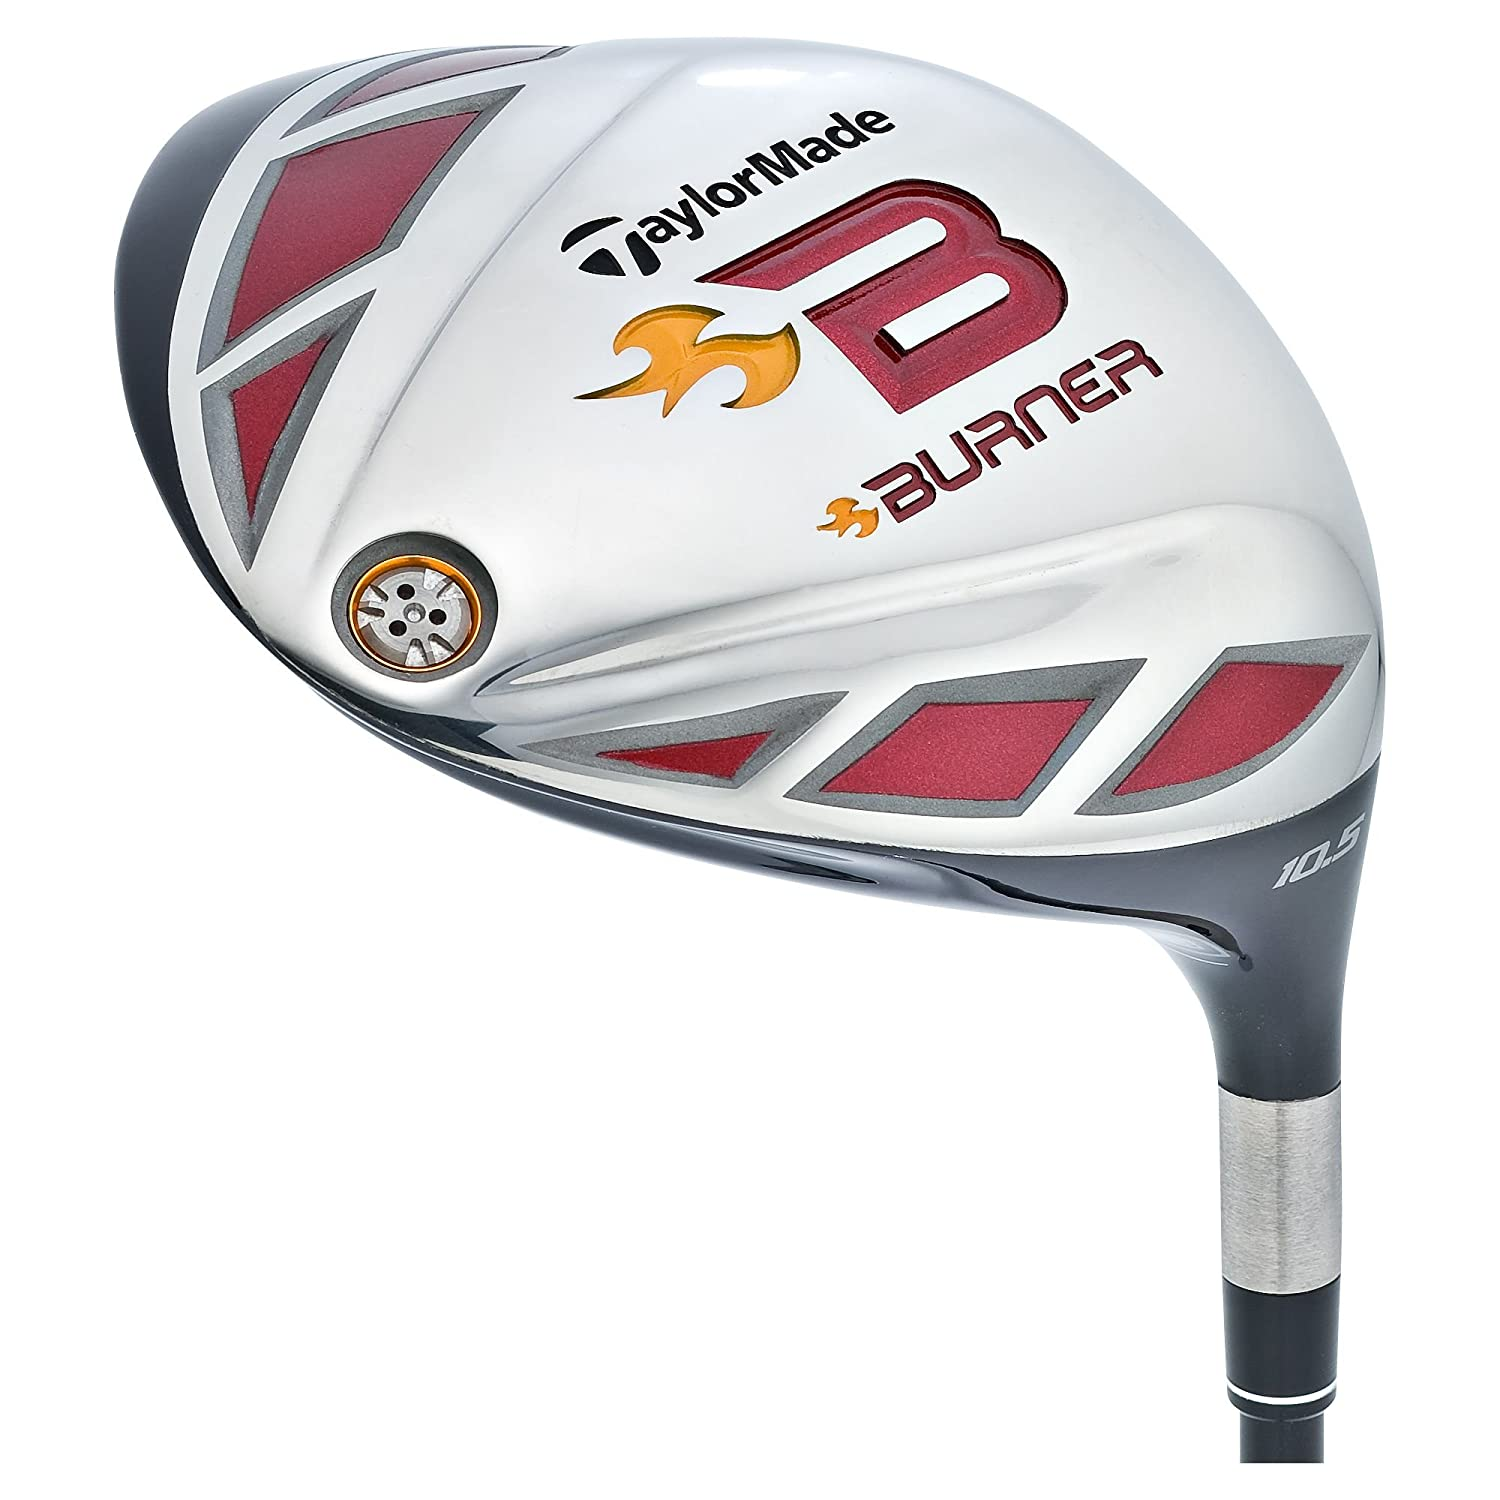 TAYLORMADE MENS BURNER 460 TI DRIVER DOWNLOAD FREE